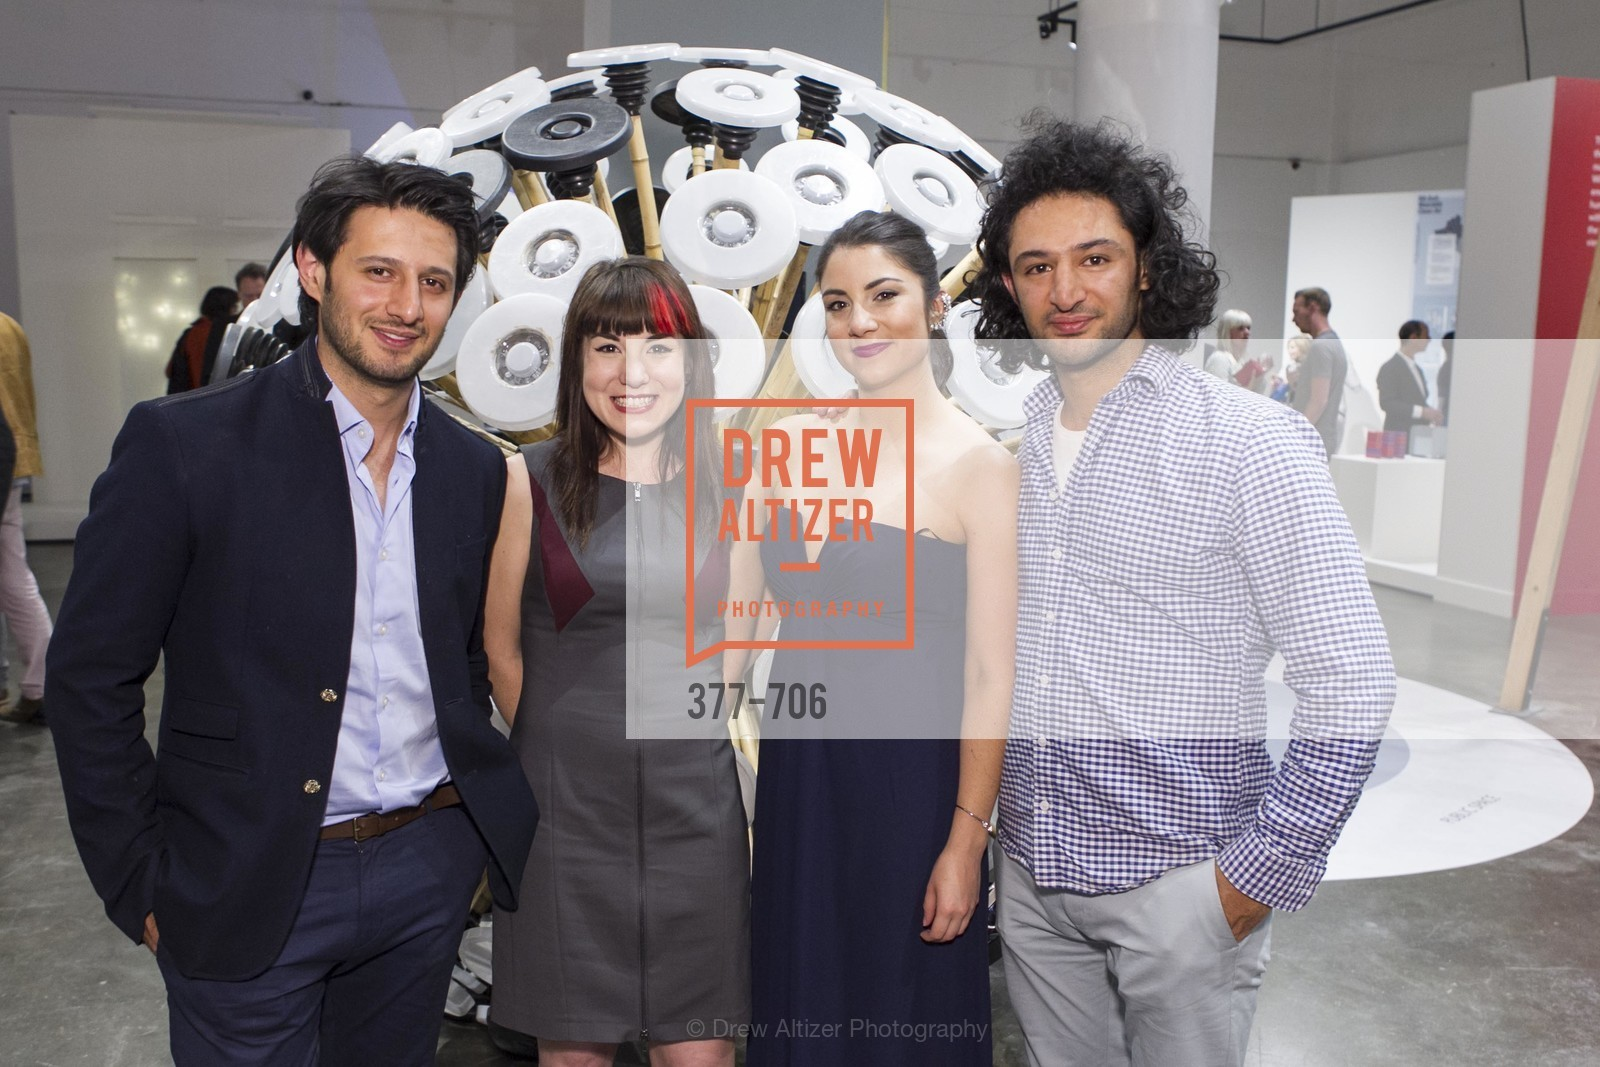 Mahmud Hassani, Ariel Zaccheo, Sara Dermody, Massoud Hassani, Exhibit Opening at the MUSEUM OF CRAFT AND DESIGN - Hands Off: New Dutch Design at the Confluence of Technology & Craft, US, May 7th, 2015,Drew Altizer, Drew Altizer Photography, full-service agency, private events, San Francisco photographer, photographer california